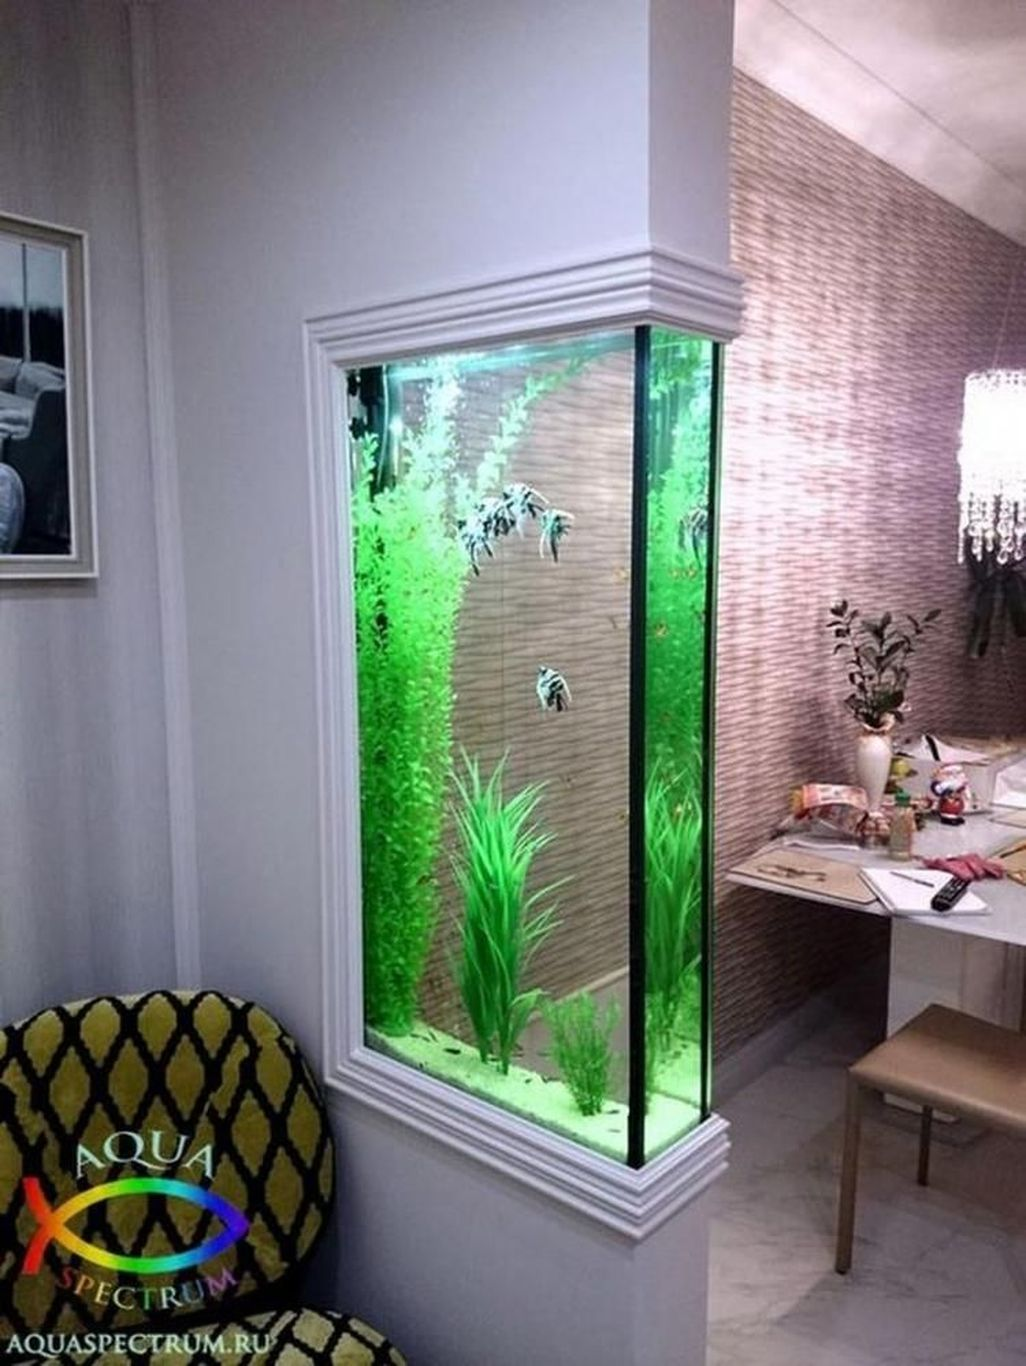 Aquarium Living Room Decor: 42 Amazing Aquarium Design Ideas Indoor Decorations